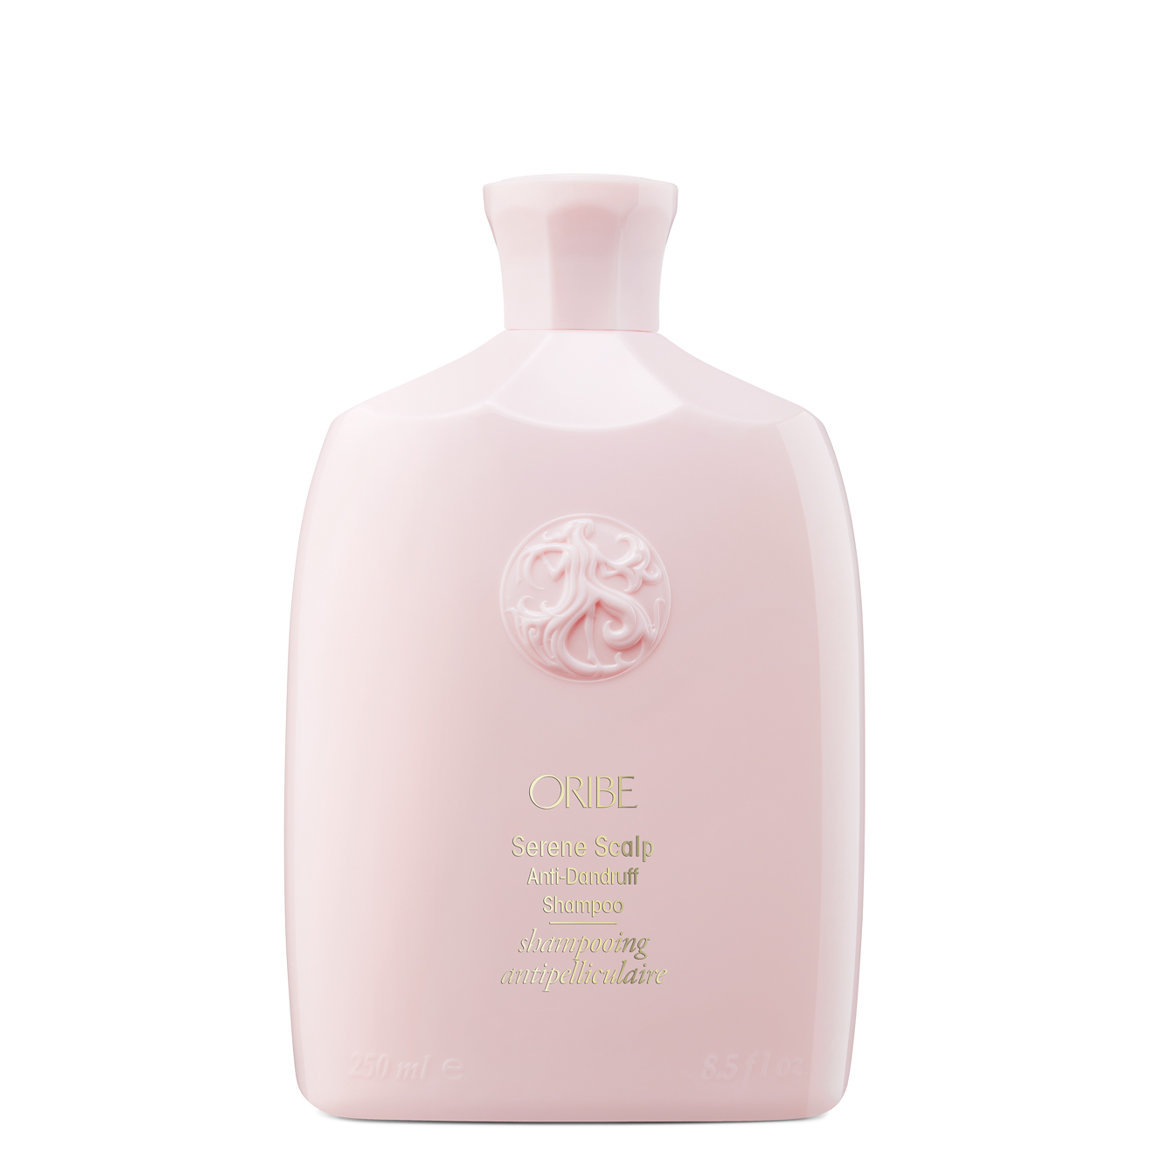 Oribe Serene Scalp Anti-Dandruff Shampoo 8.5 oz alternative view 1 - product swatch.